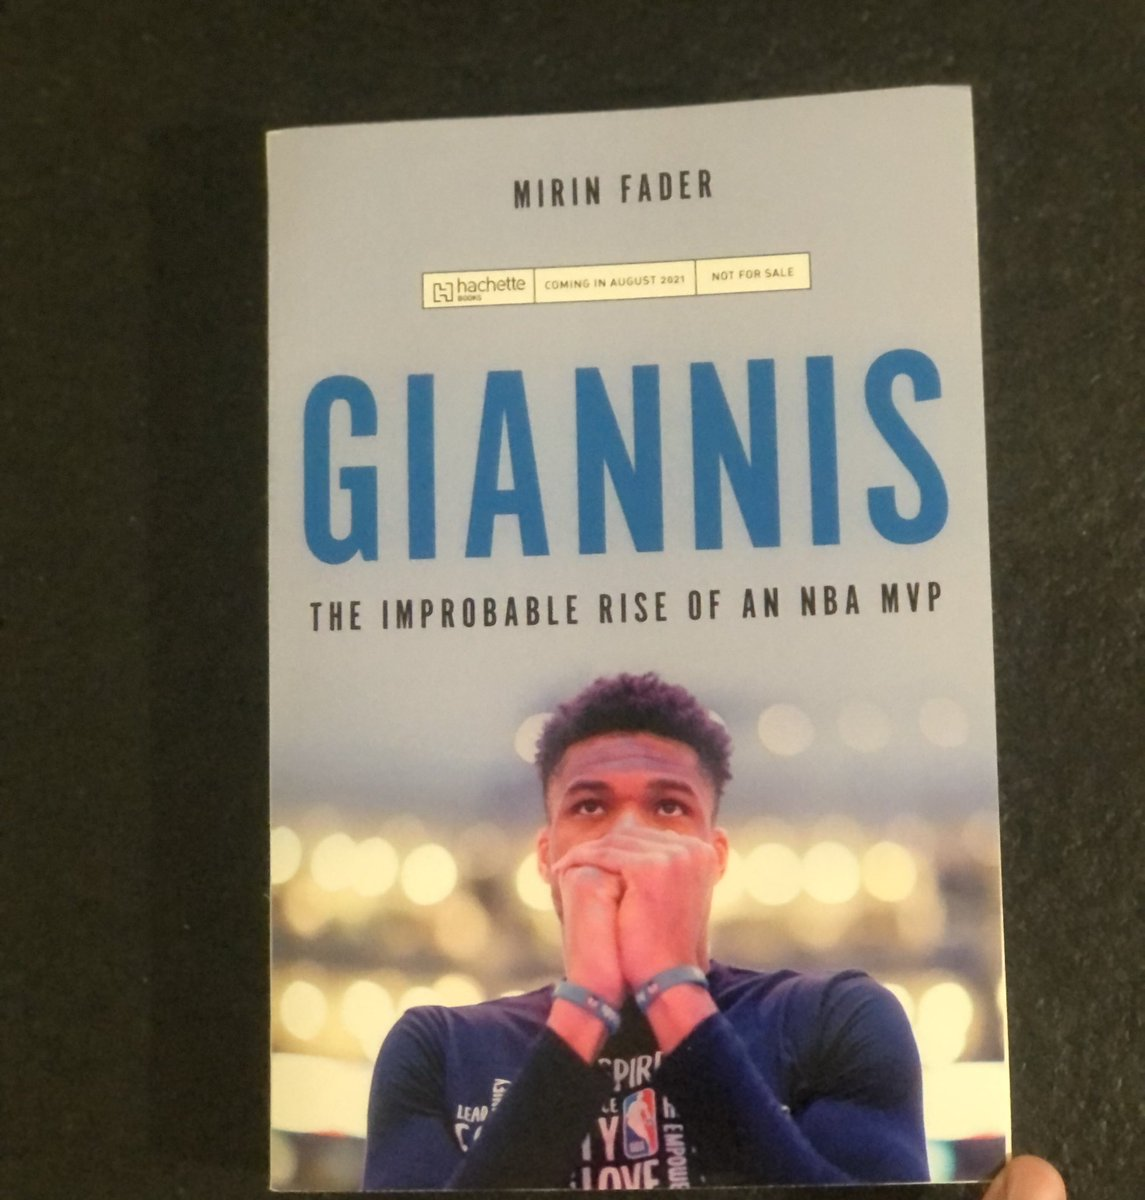 Excited to check this out. Appreciate you for sending it @MirinFader 🙏🏾 https://t.co/13iXMxhpin